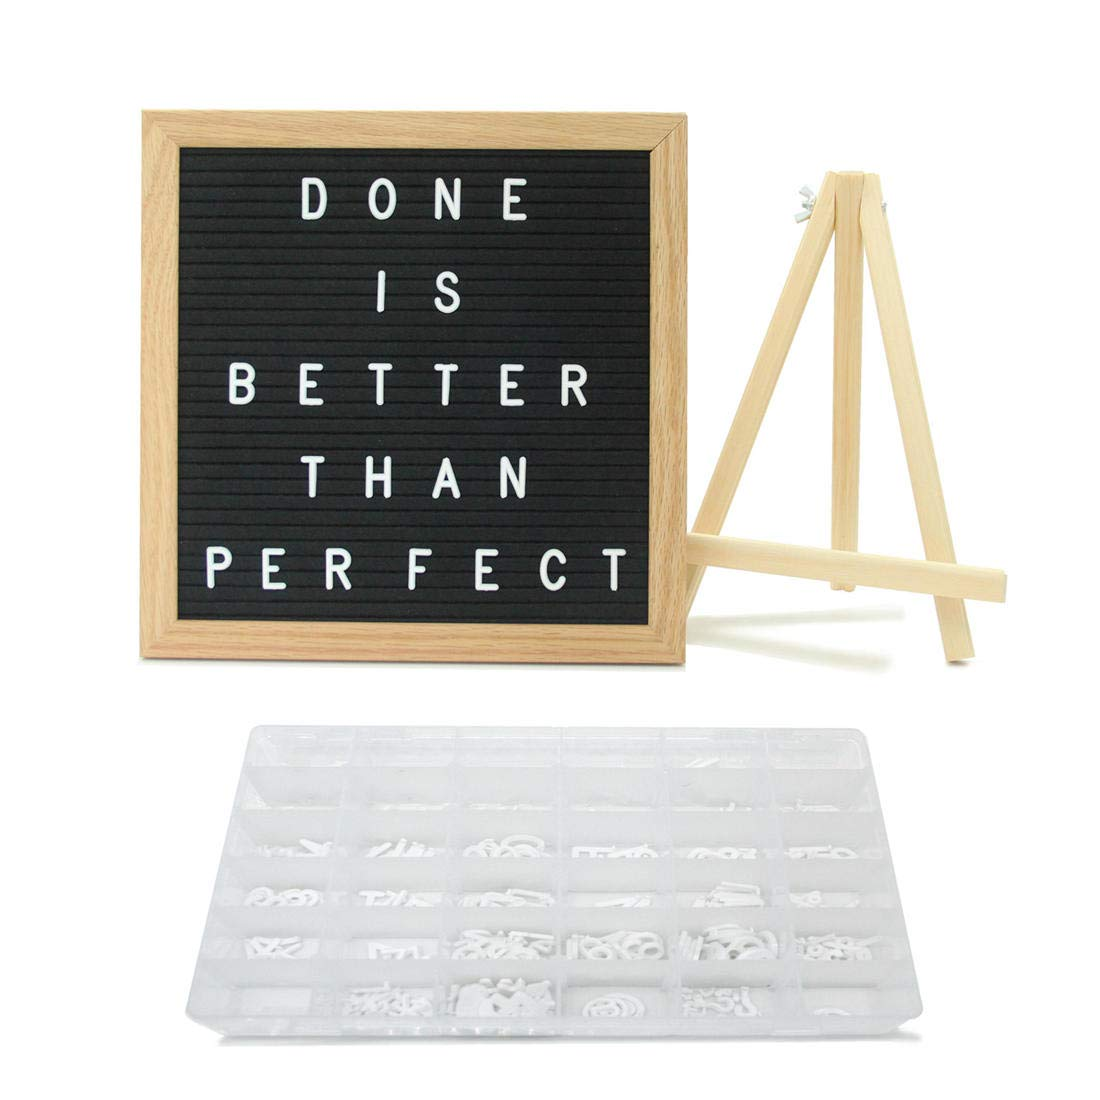 Personalized Changeable Letters for Letter Board, 4 Sheets, White, Including Art Font January to December, Monday to Sunday, Alphabets, Numbers, Words & Symbols - Hearts, Happy, Arrows, Happy, # & HiHa